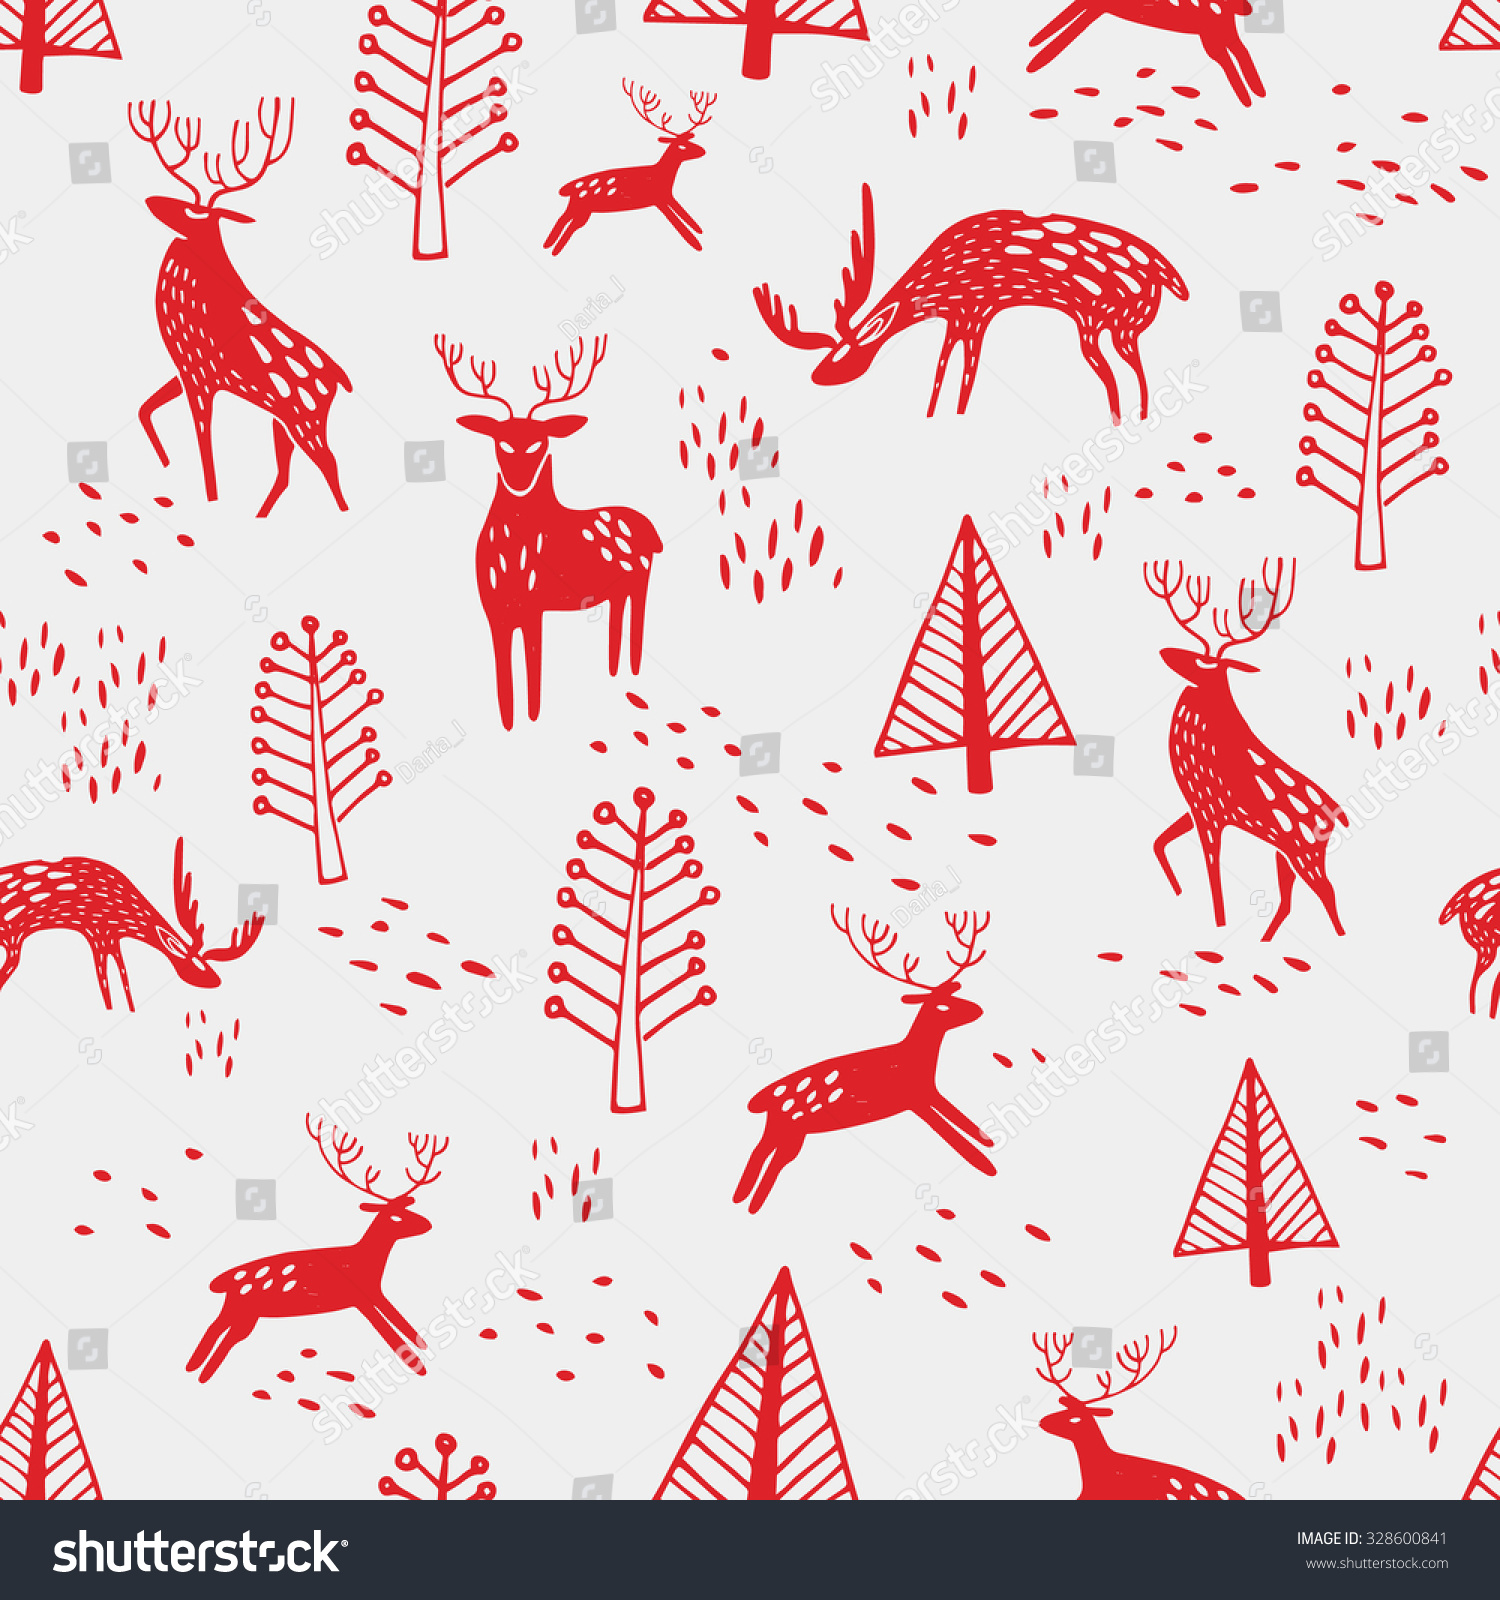 Seamless fir tree scandinavian pattern textile background wrapping - Scandinavian Seamless Pattern With Red Deer Nordic Style Textiles Christmas Wrapping Paper